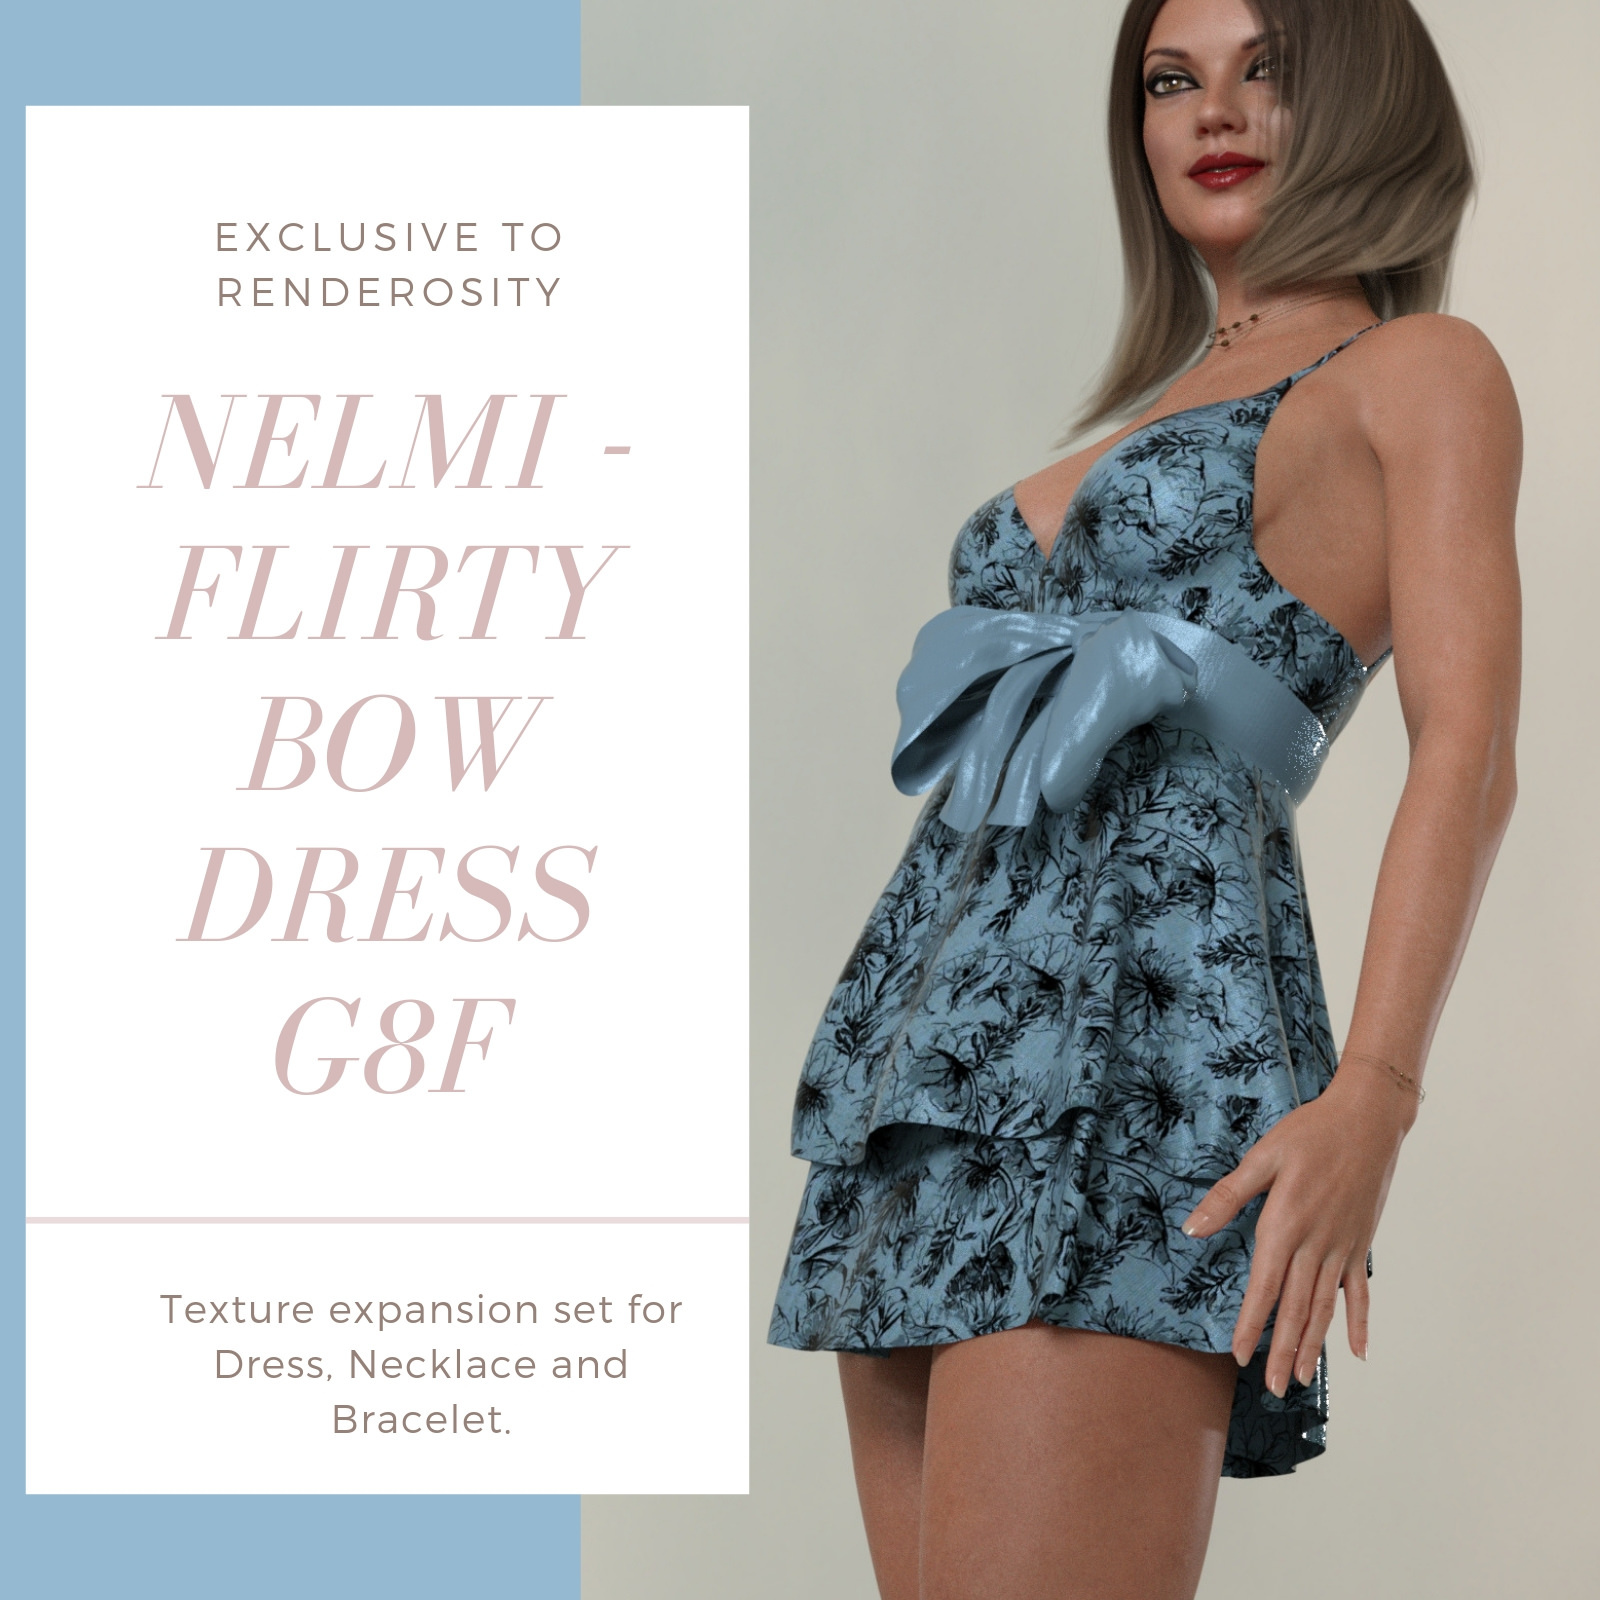 NELMI for dForce Flirty Bow Dress - Genesis 8 Female(s)